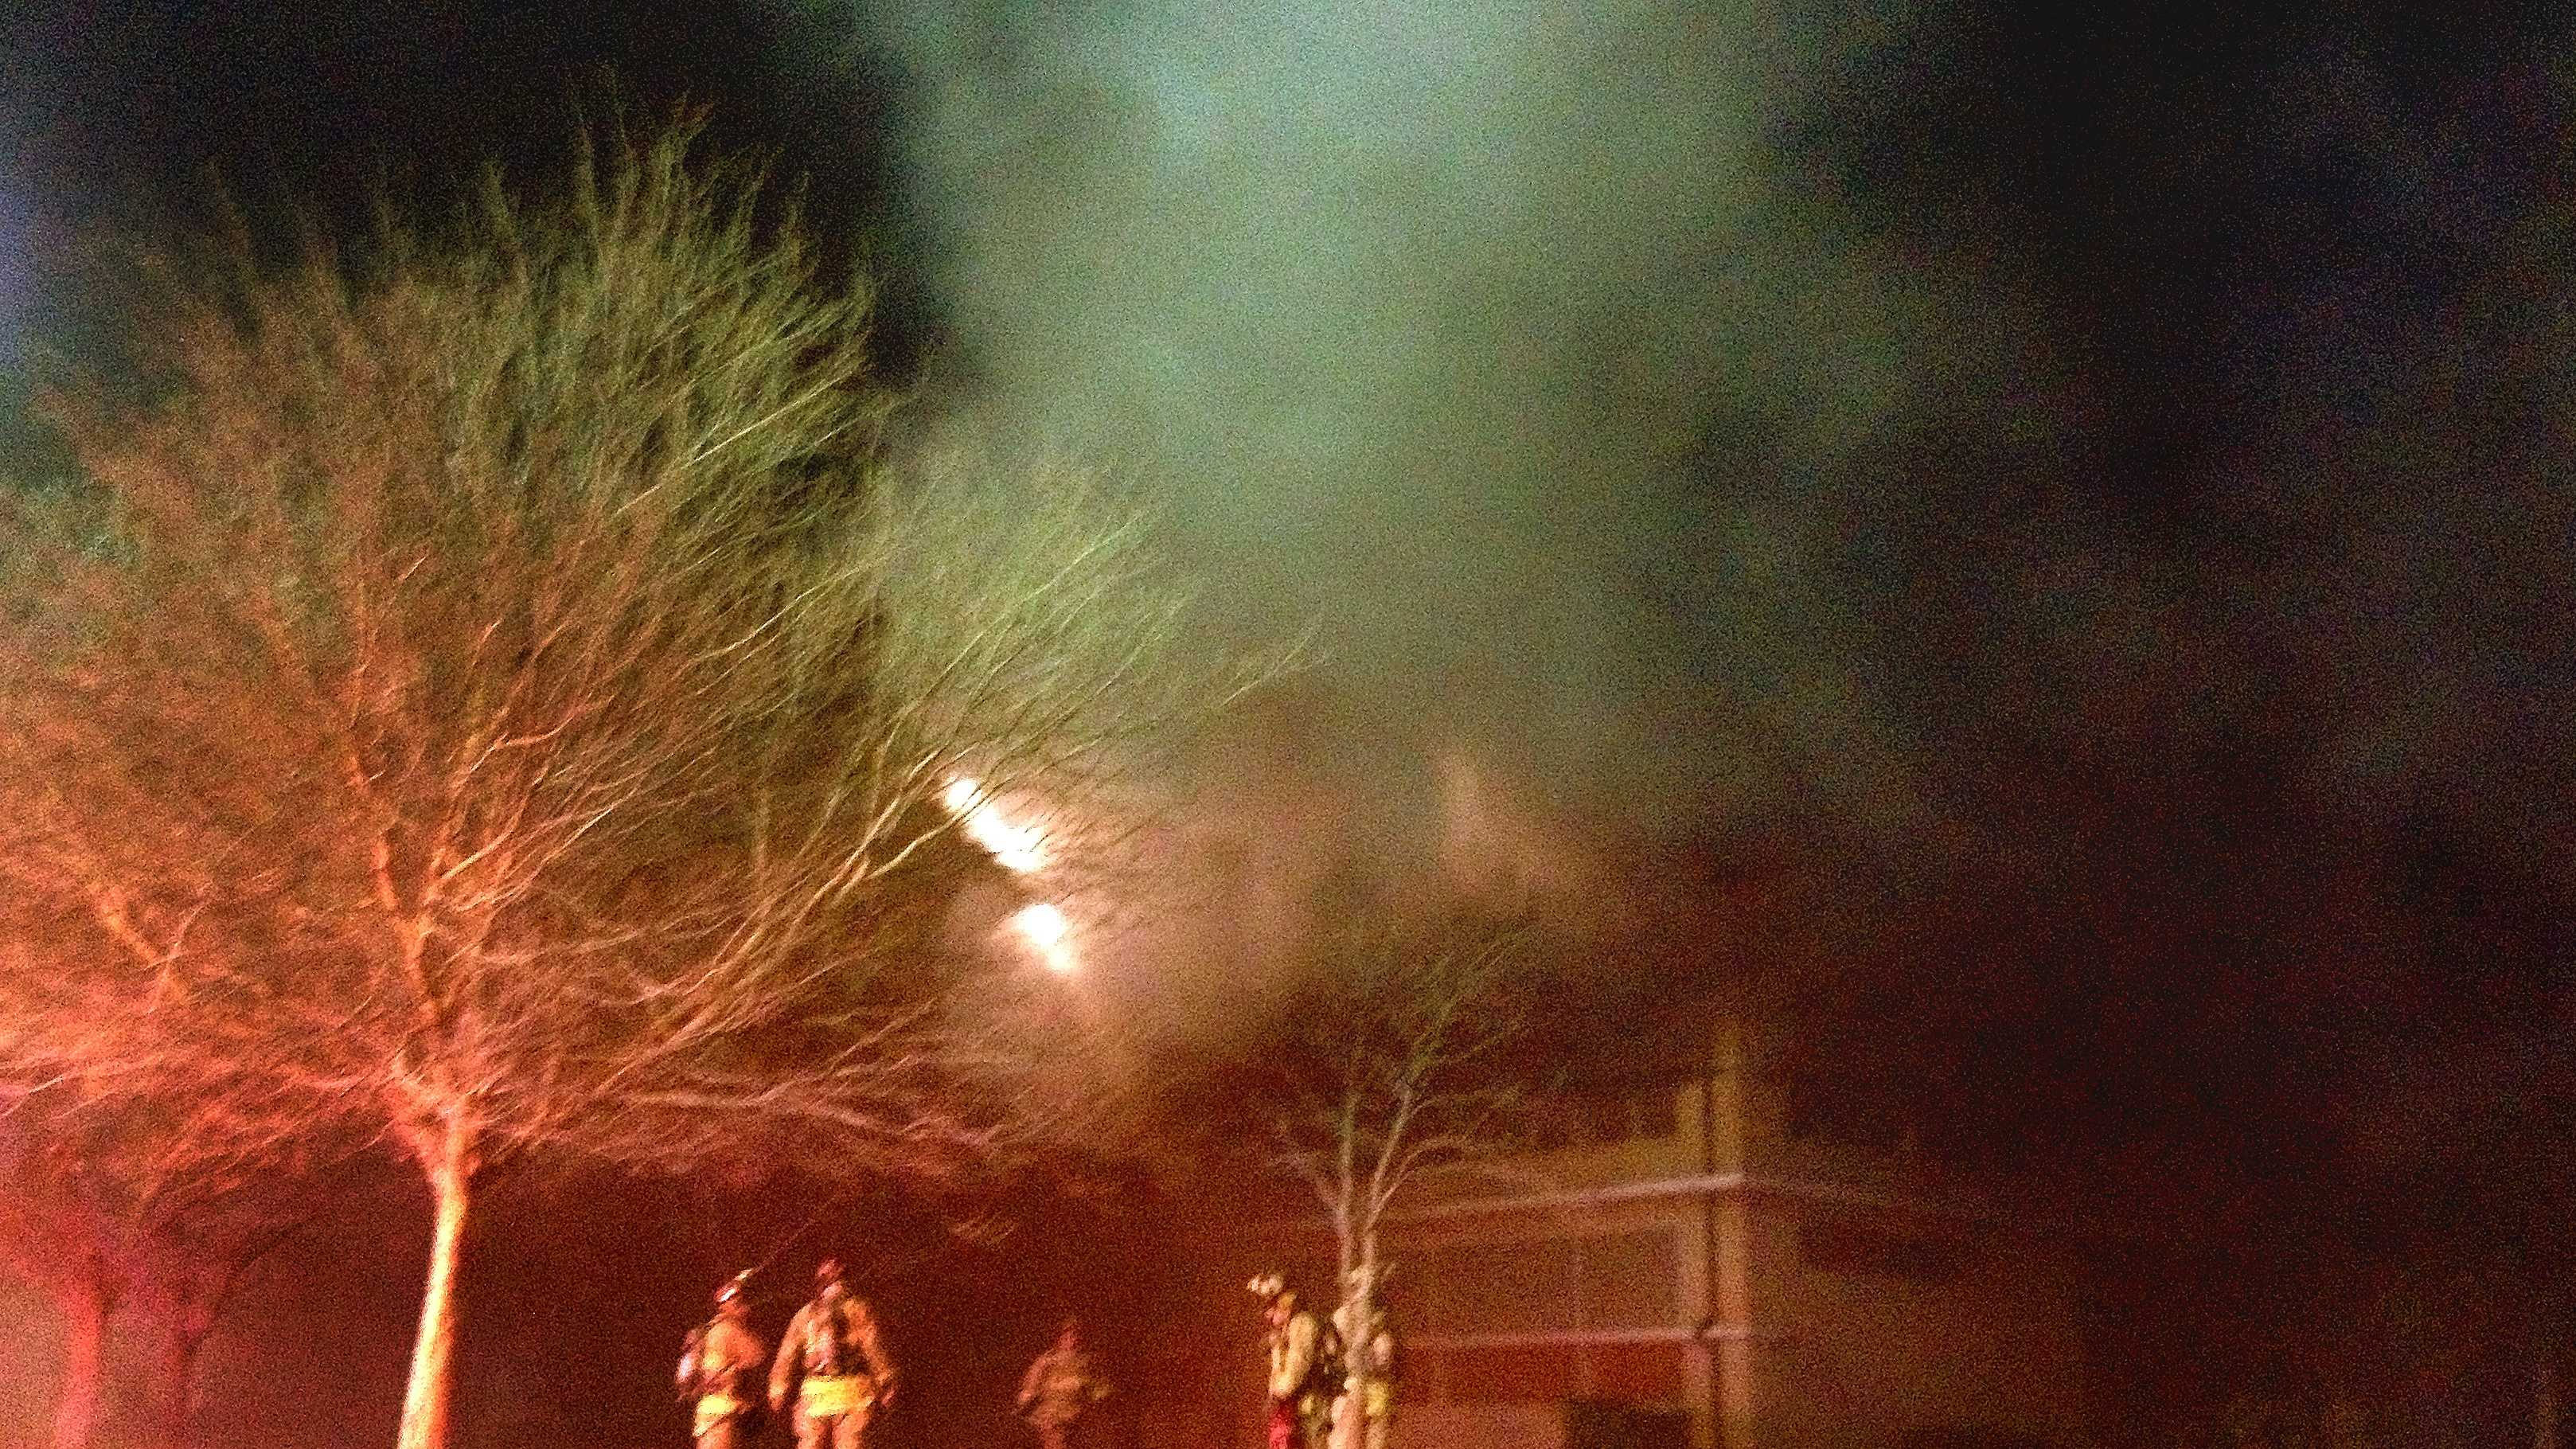 Firefighters battle a blaze at the old John Marshall High School building.